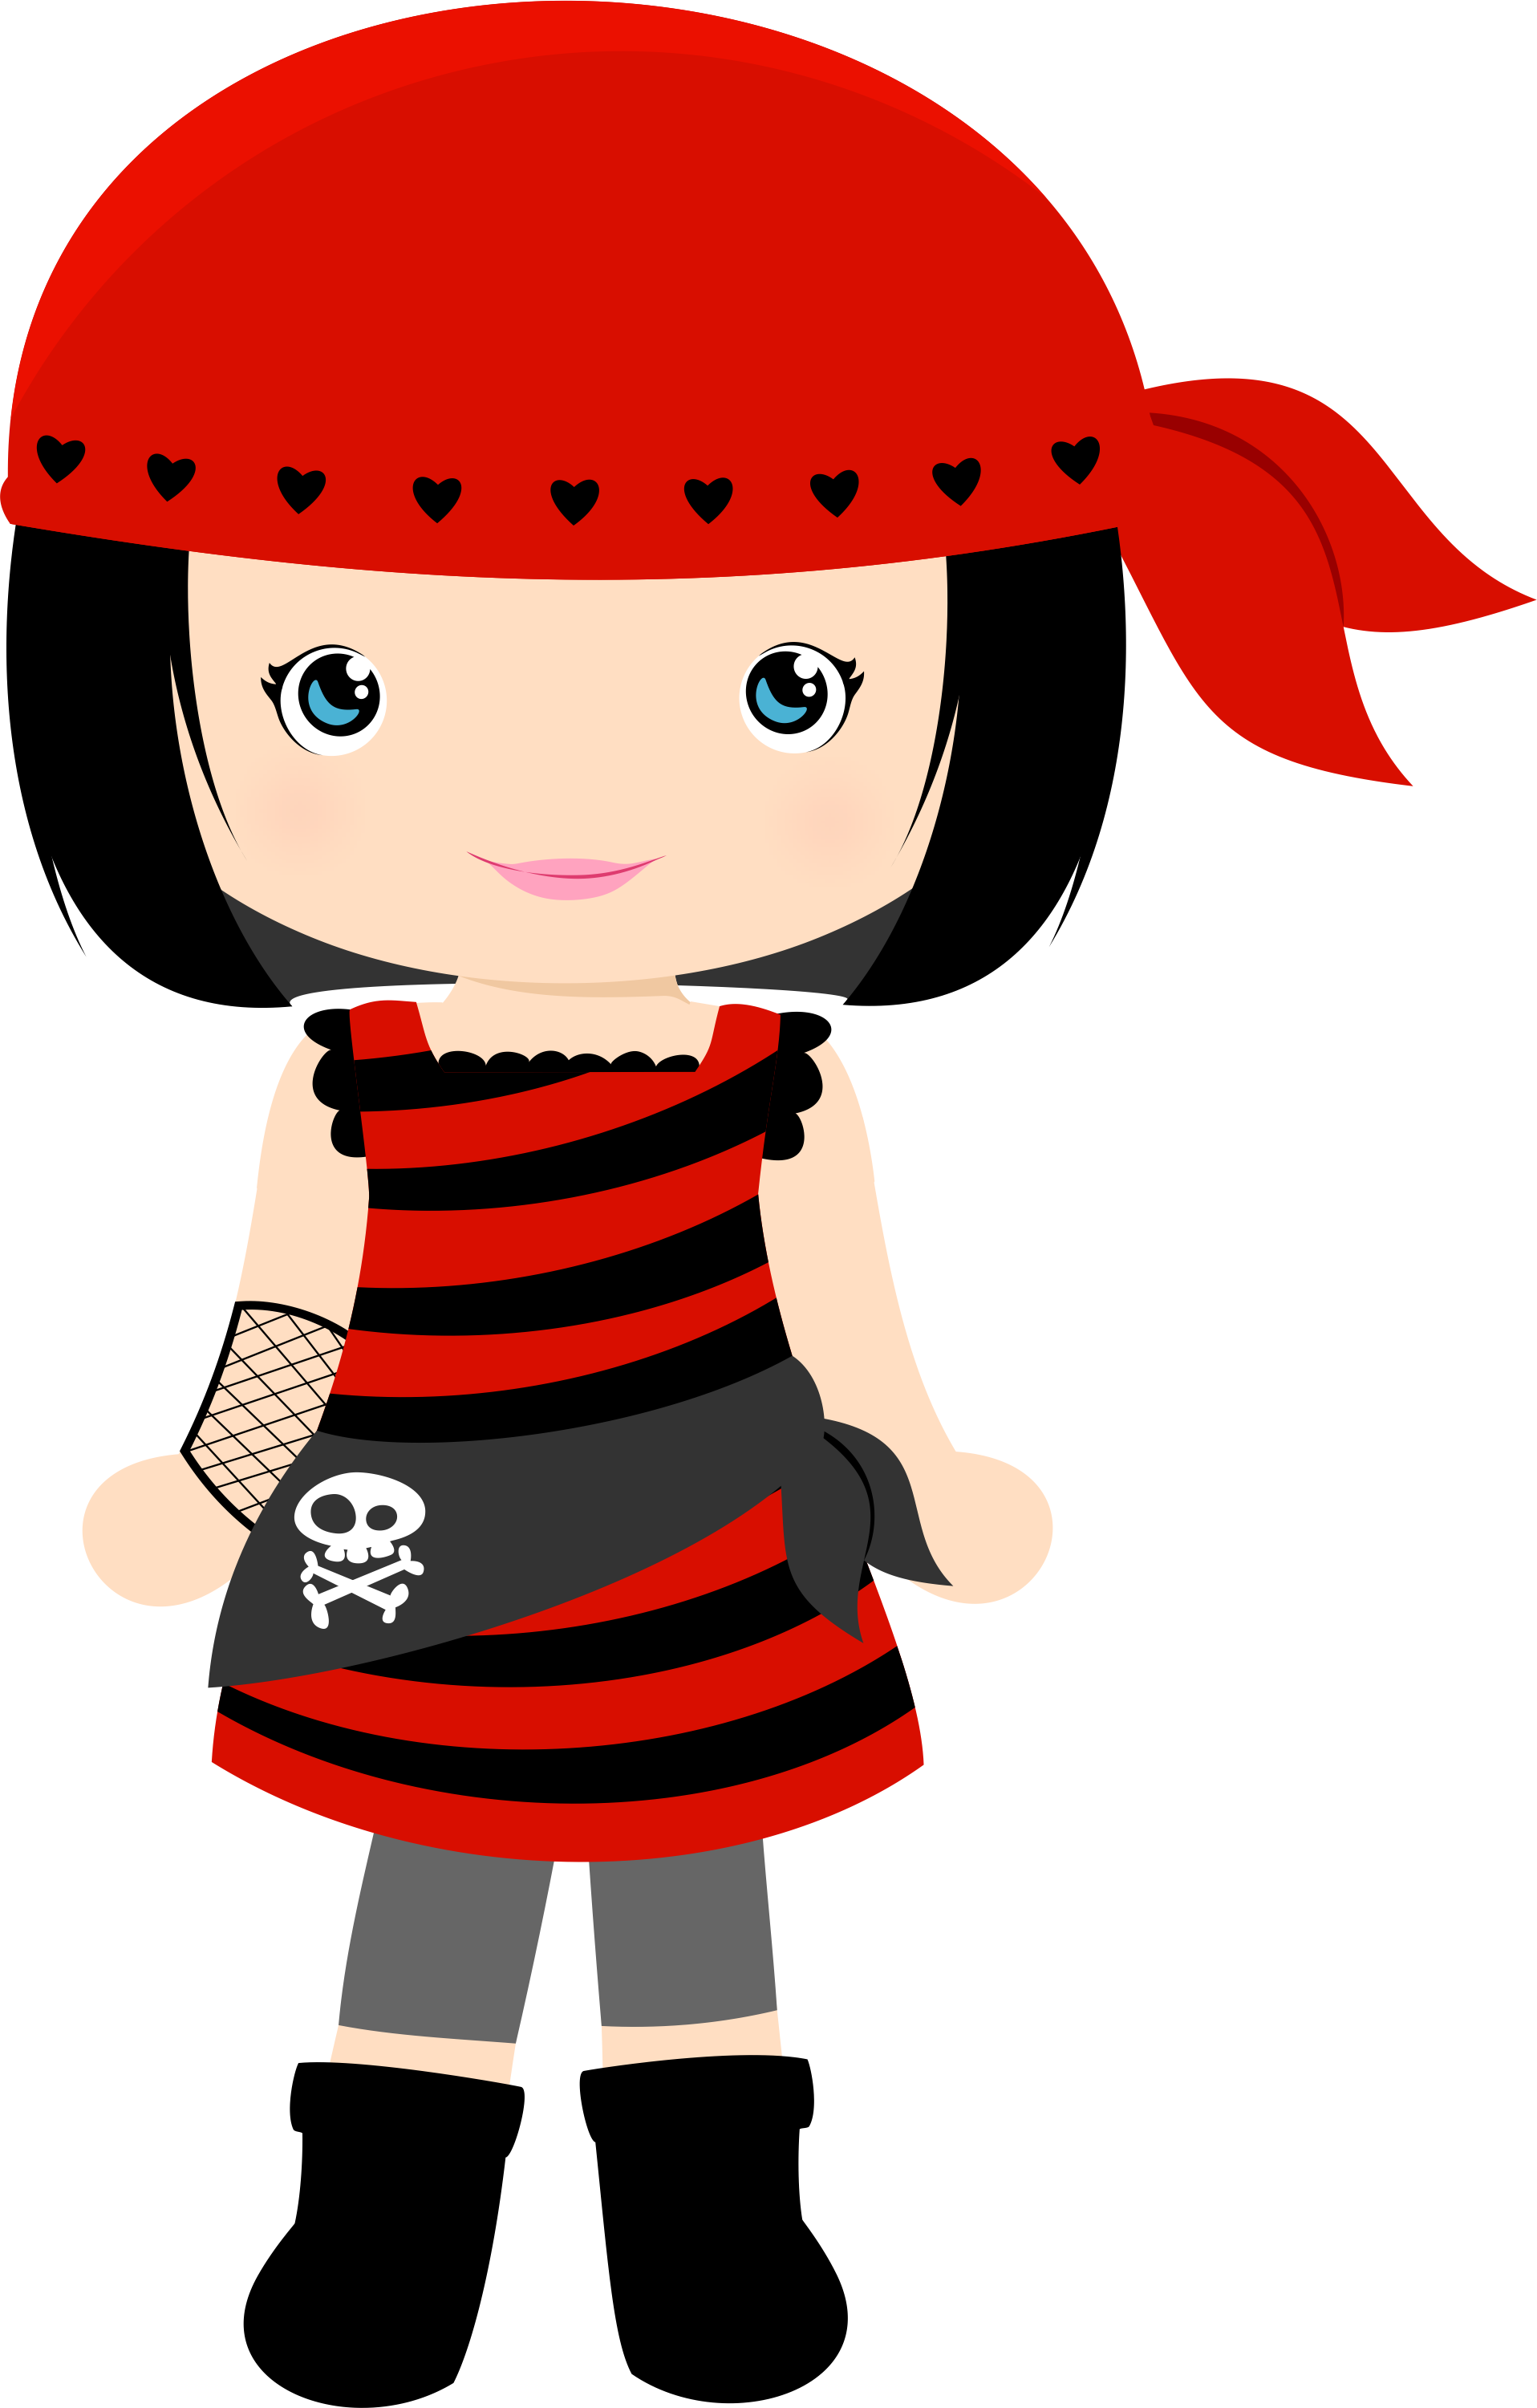 Grafos girlscostumes girlcostume png. Cute halloween pirate clipart